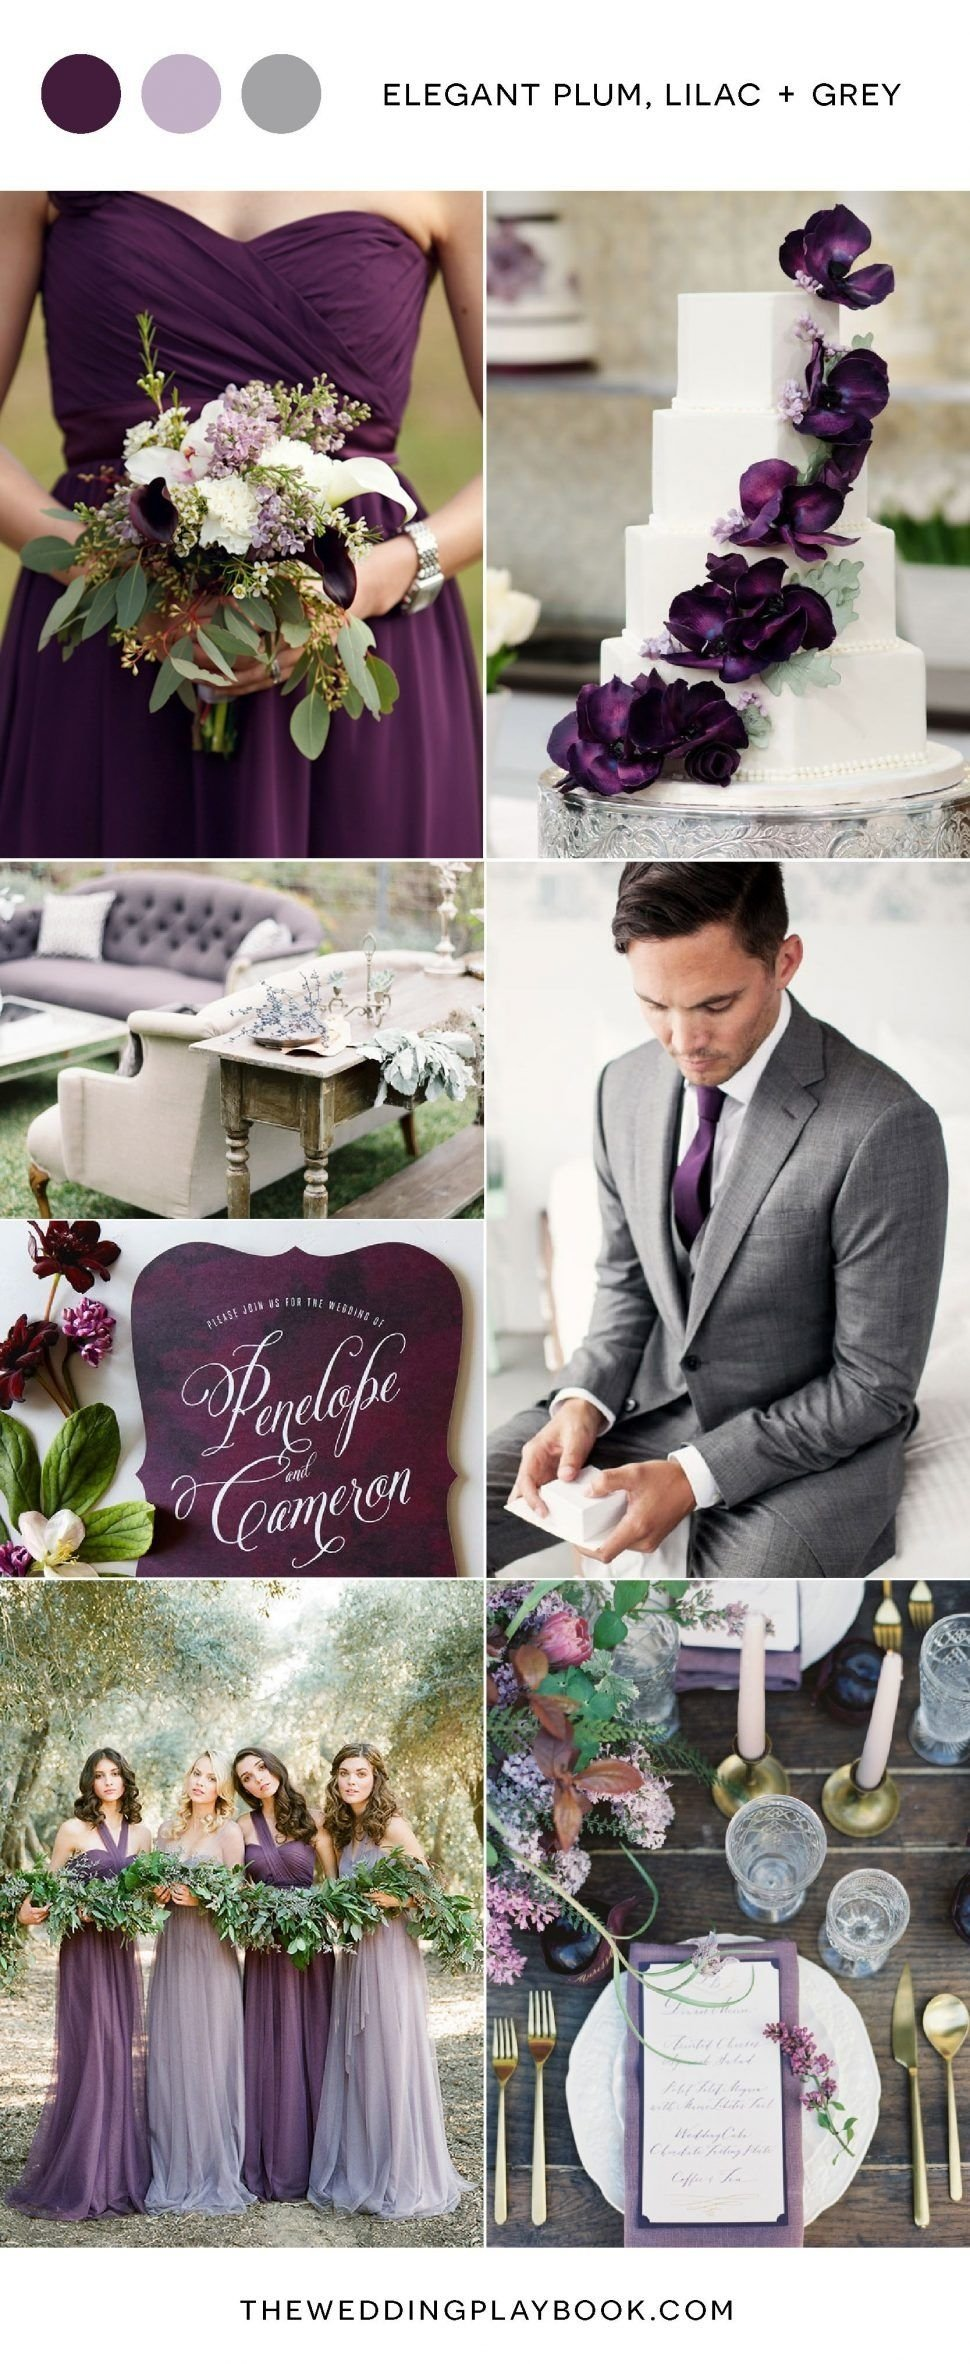 10 Amazing Wedding Color Ideas For Fall fascinating emejing wedding colors with grey styles u ideas pic of 2020